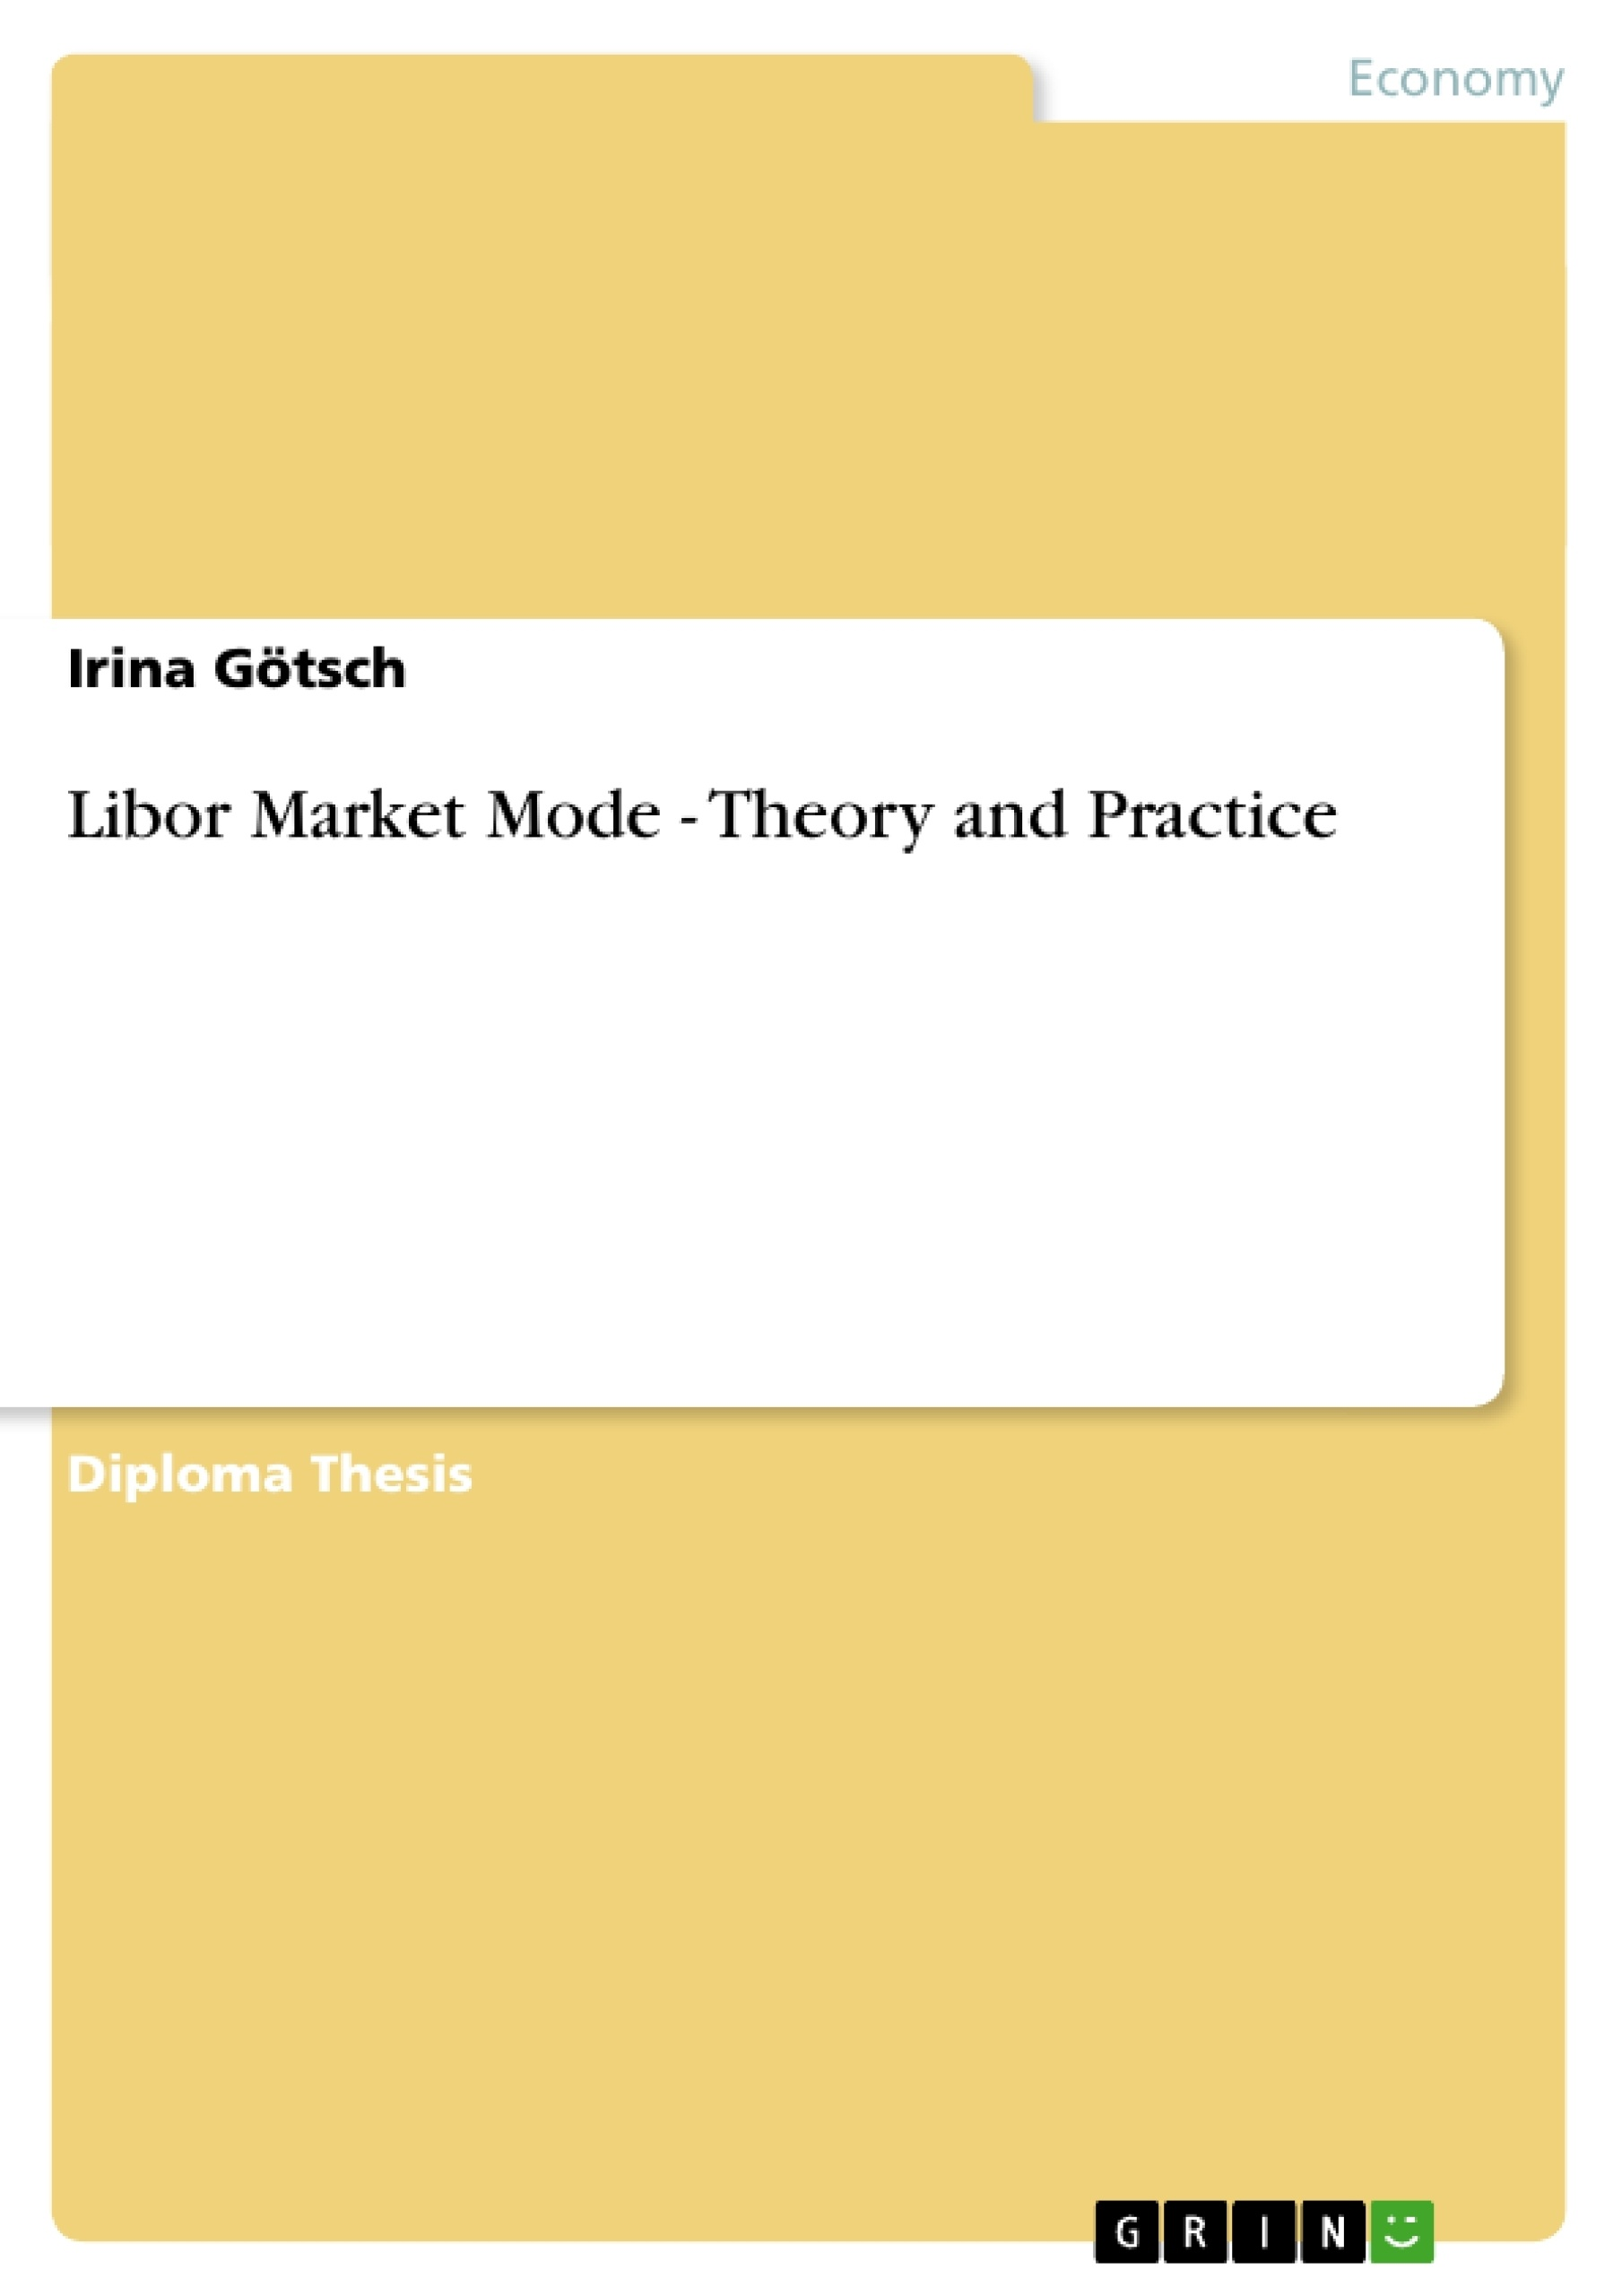 Title: Libor Market Mode - Theory and Practice